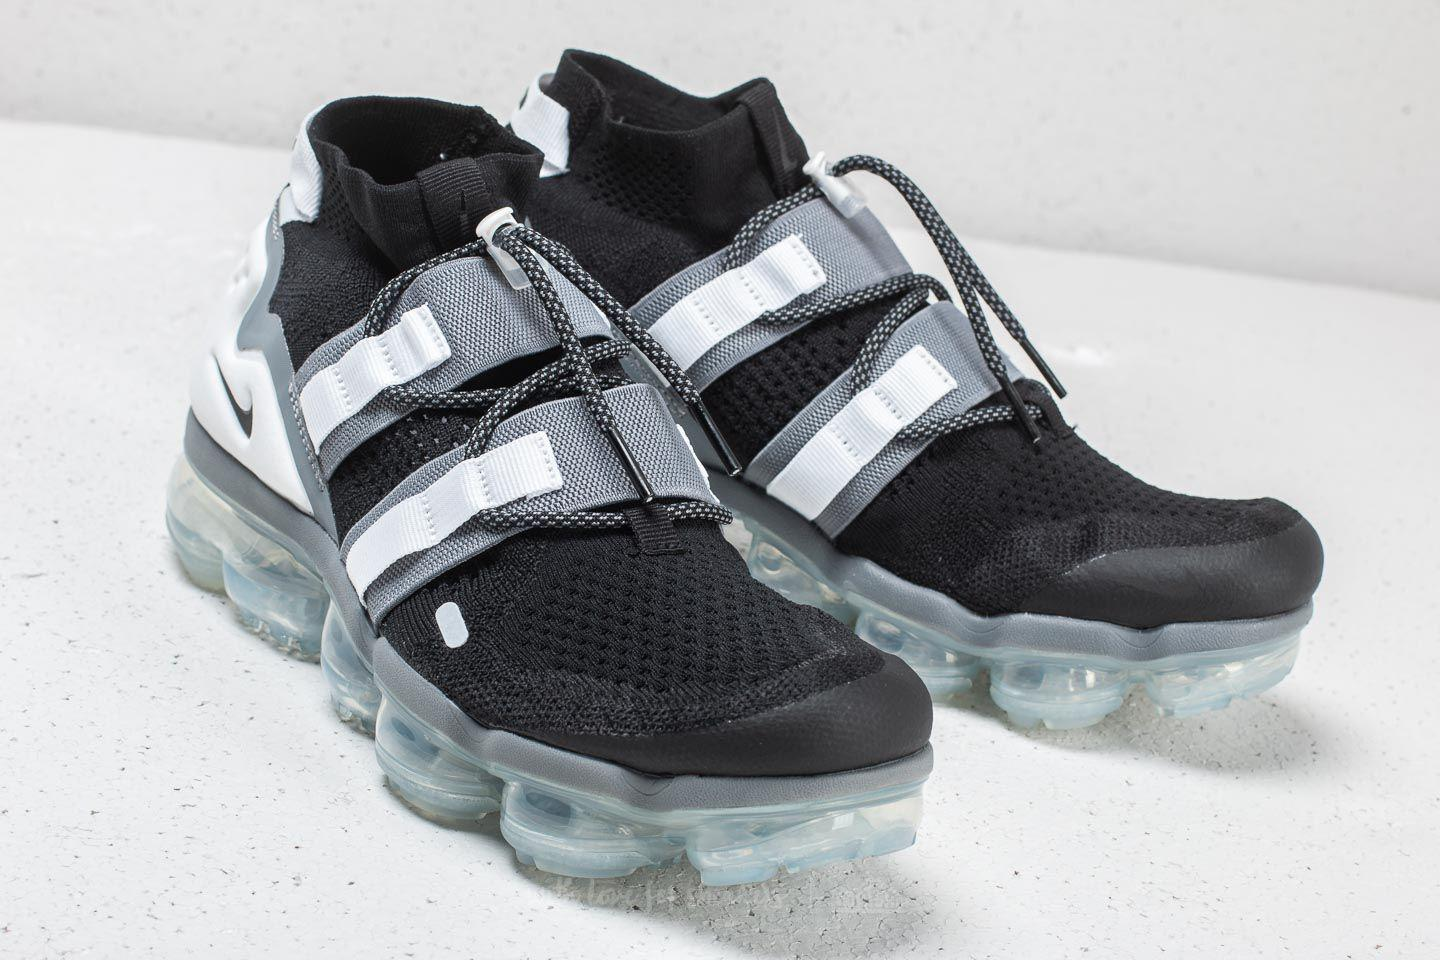 4e281fb1110 ... clearance lyst nike air vapormax fk utility black black cool grey white  in dae4e c9340